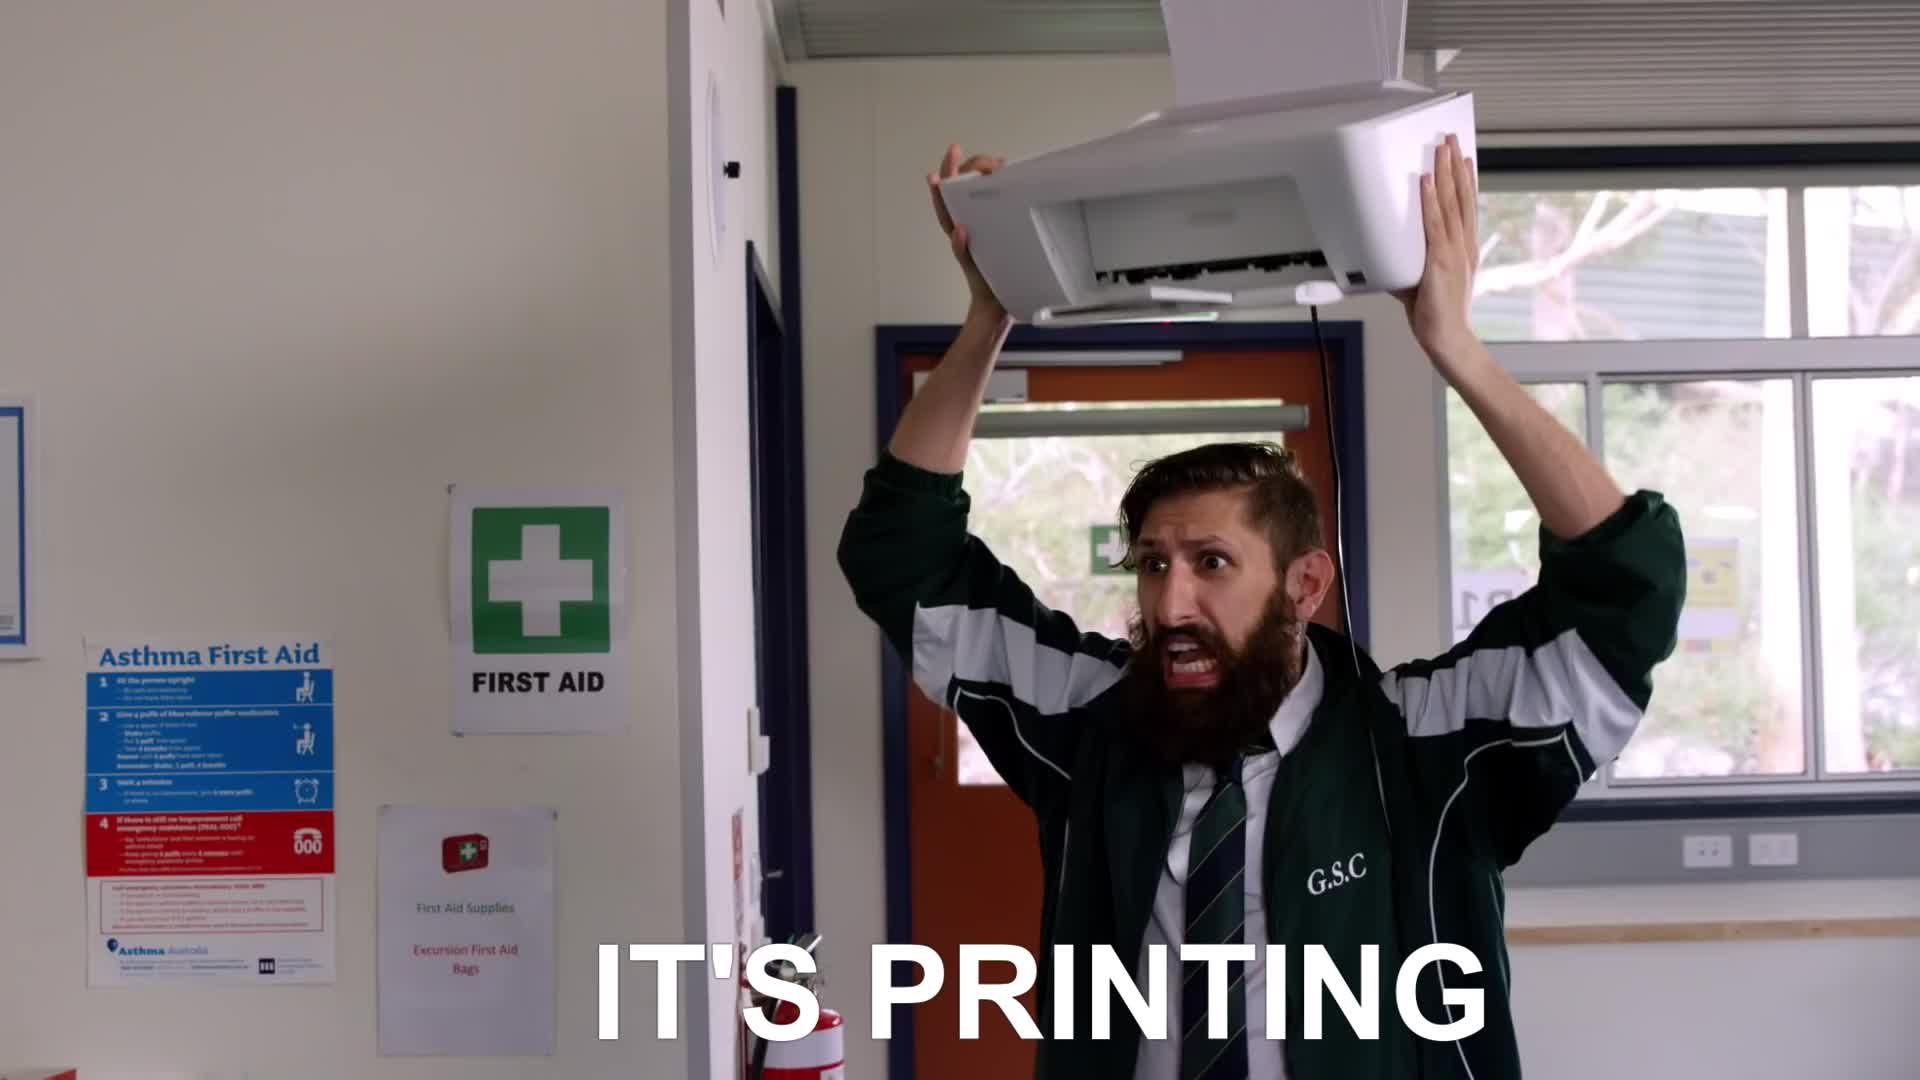 aunty, aunty donna, comedy, donna, funny, humor, humour, sketch, videos, Printing GIFs